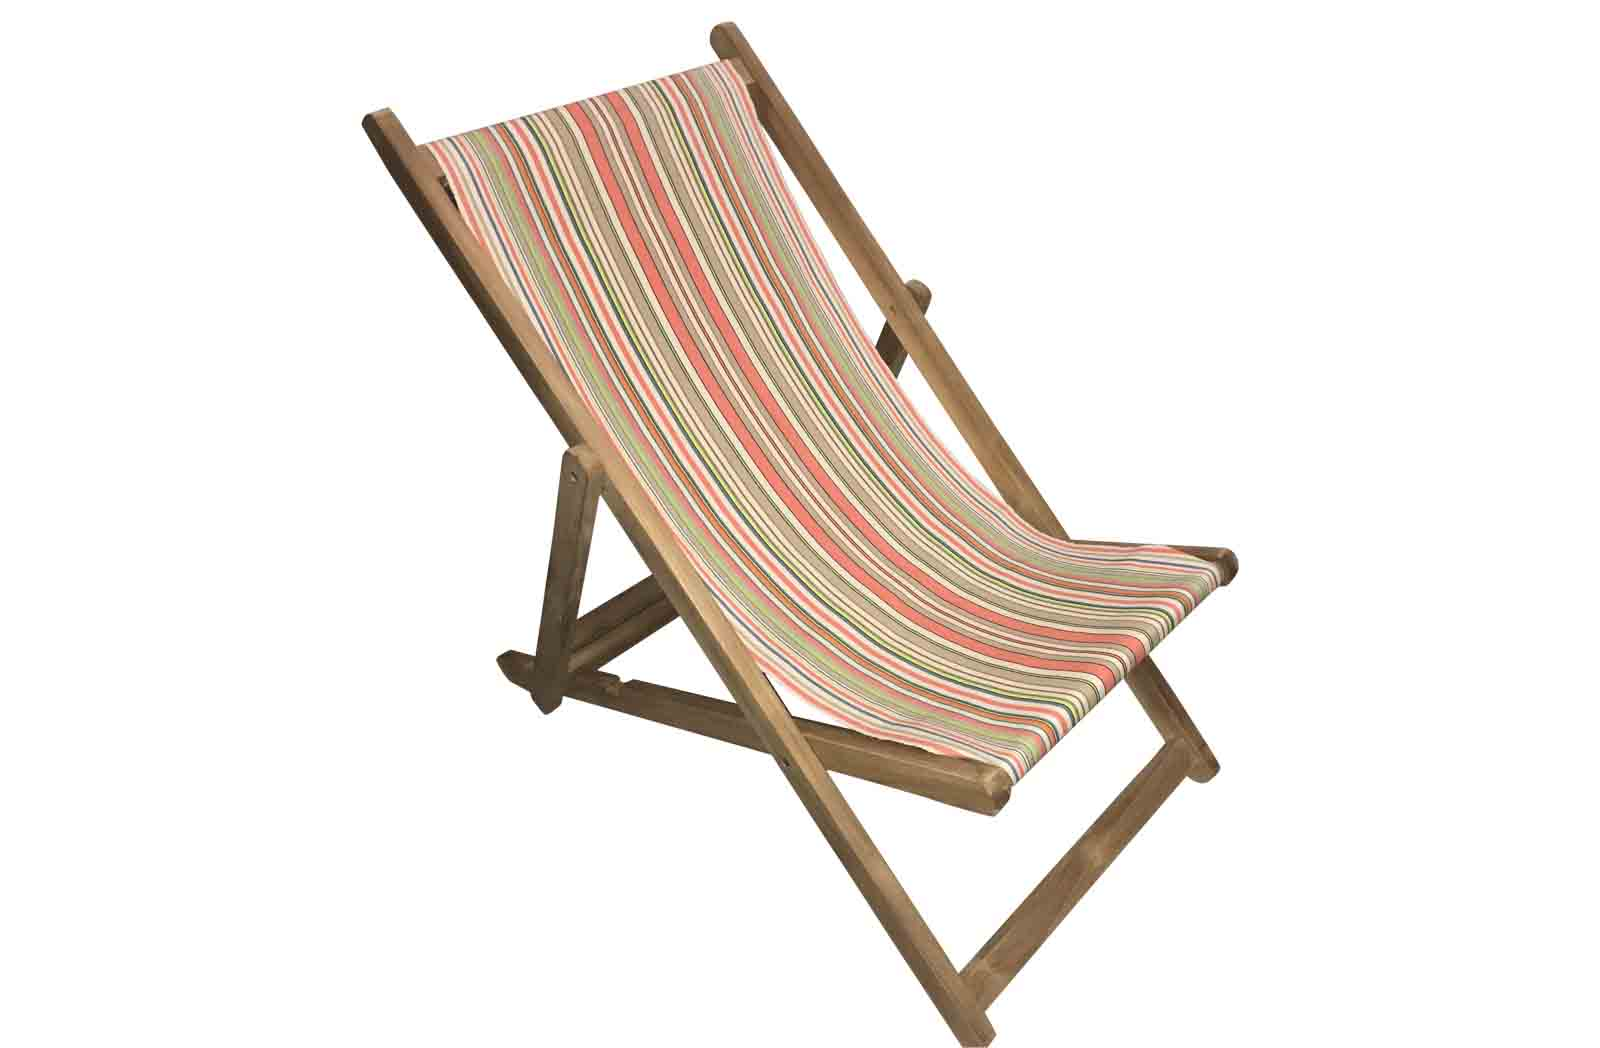 Pretty Coral Stripe Deckchair | Wooden Folding Deck Chairs Vintage Look Stripes